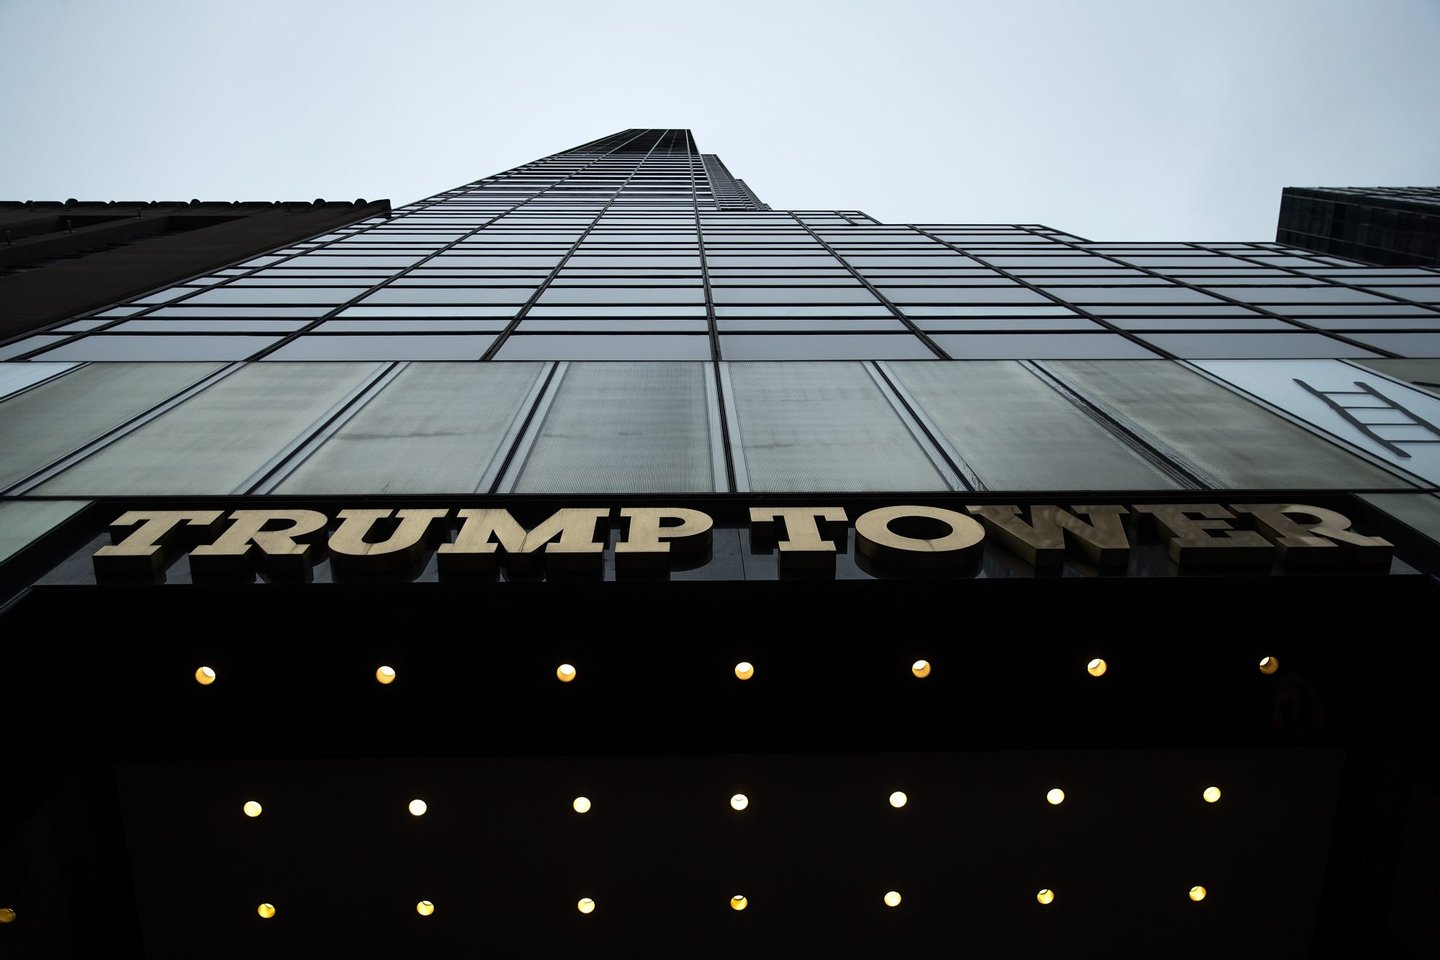 NEW YORK, NEW YORK - SEPTEMBER 29: A general view of Trump Tower on Fifth Avenue, September 29, 2016 in New York City. The building is owned by Republican presidential candidate Donald Trump. (Photo by Drew Angerer/Getty Images)